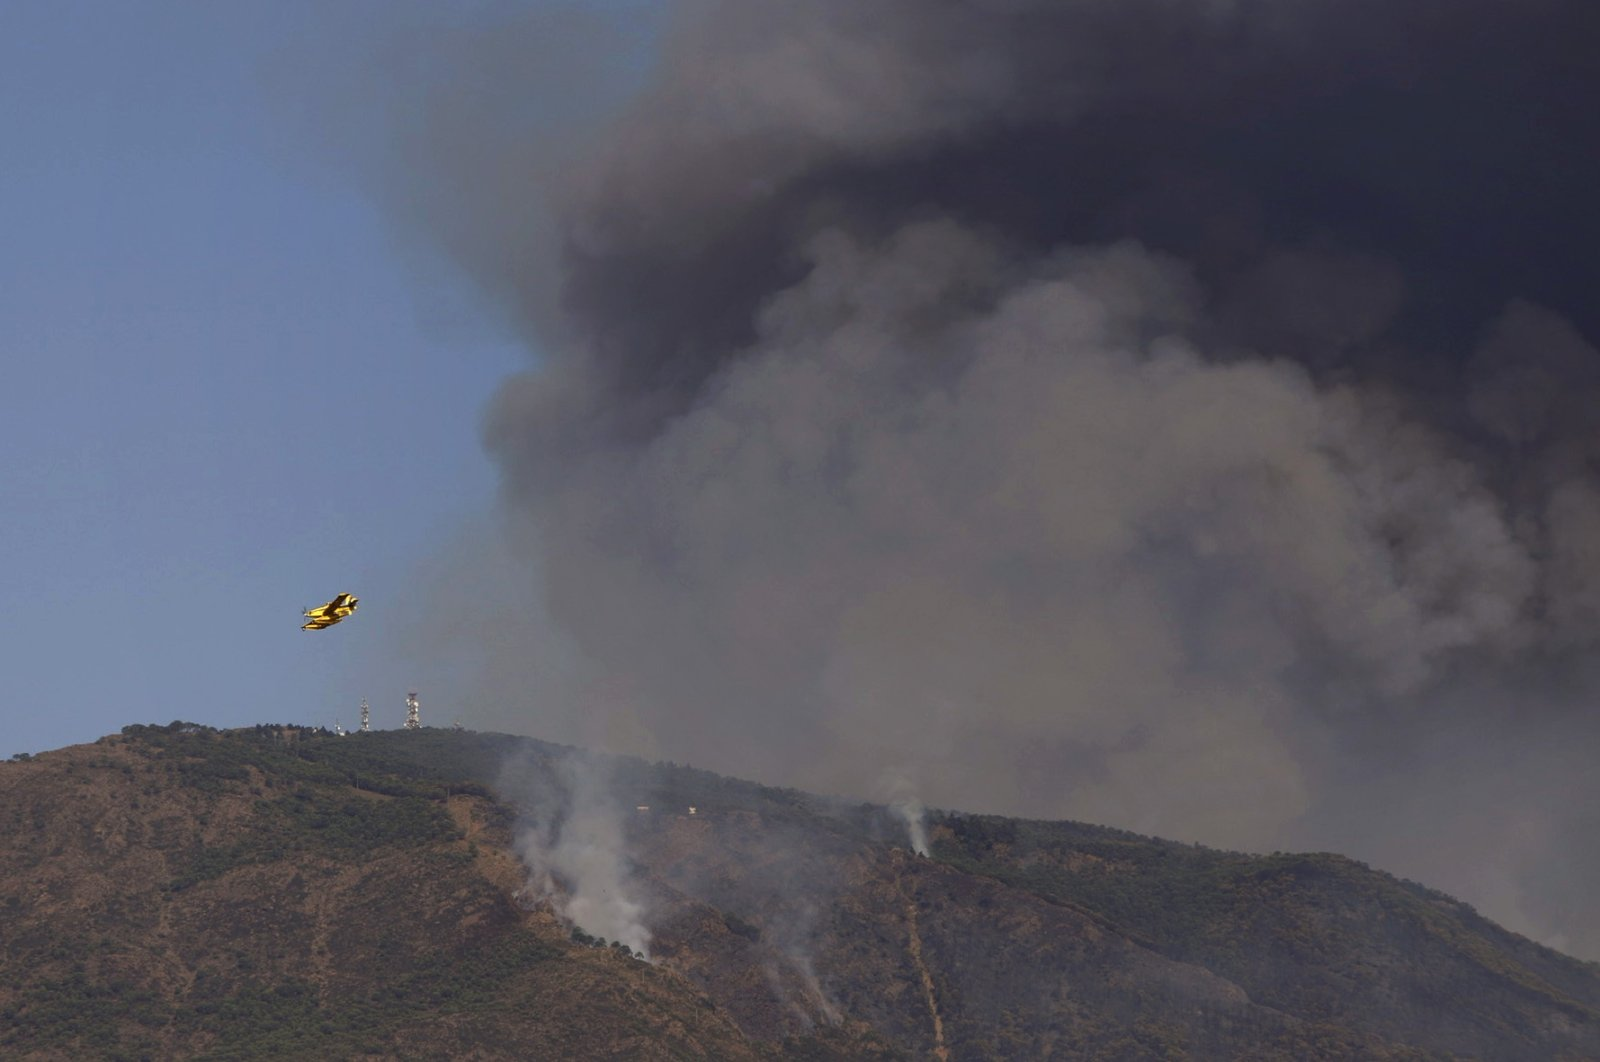 Hydroplanes operate on a wildfire in Estepona, in Malaga province, Spain, Sept. 11, 2021.  (AP Photo)